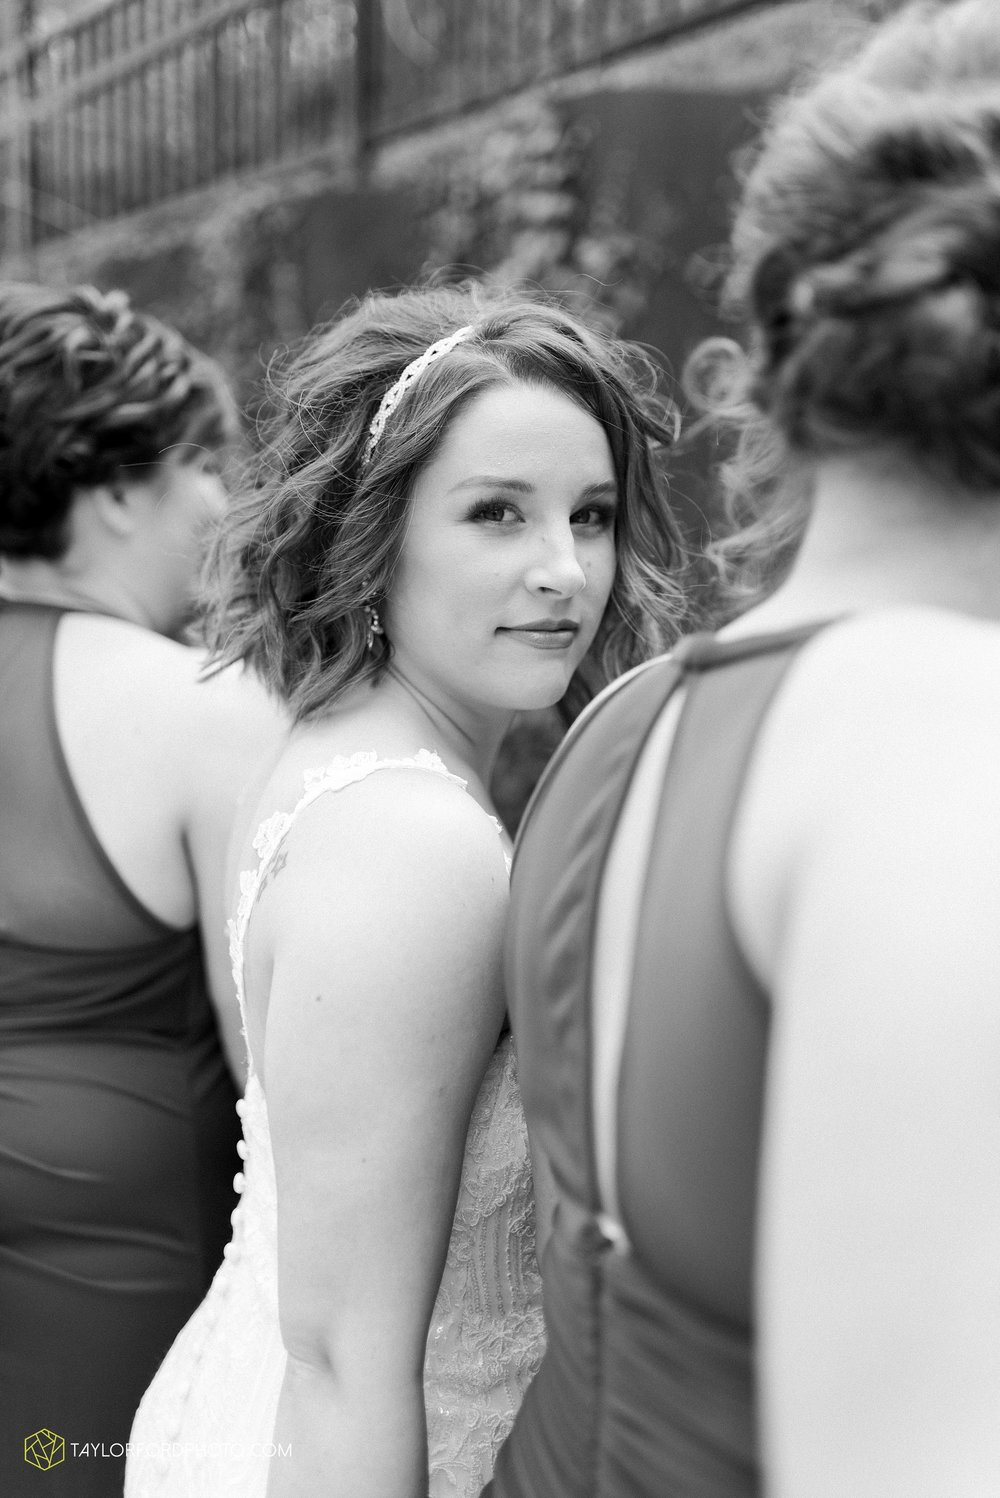 the-philmore-on-broadway-downtown-fort-wayne-indiana-wedding-photographer-Taylor-Ford-Photography_6901.jpg